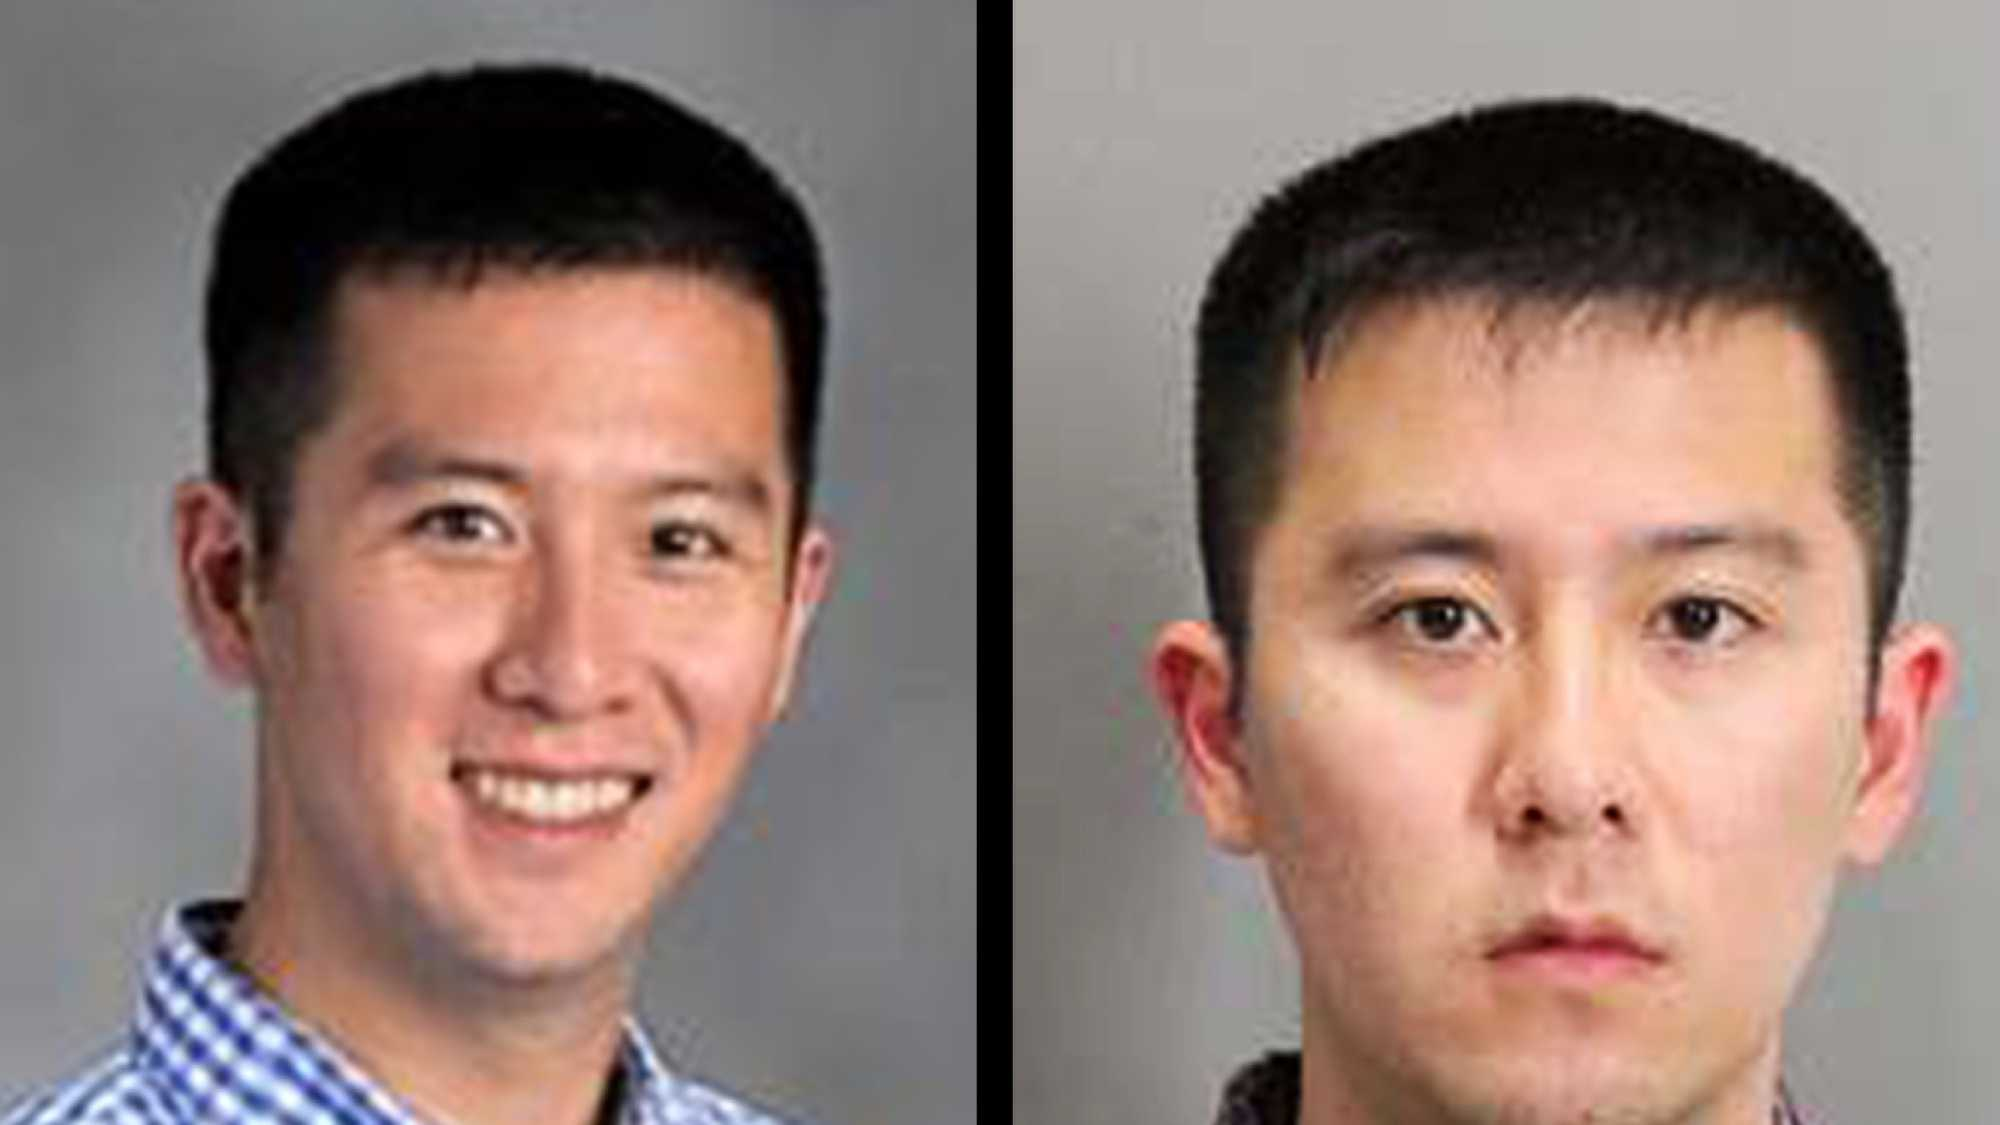 Douglas Le's Gilroy High School staff photo, left, and his mug shot, right.